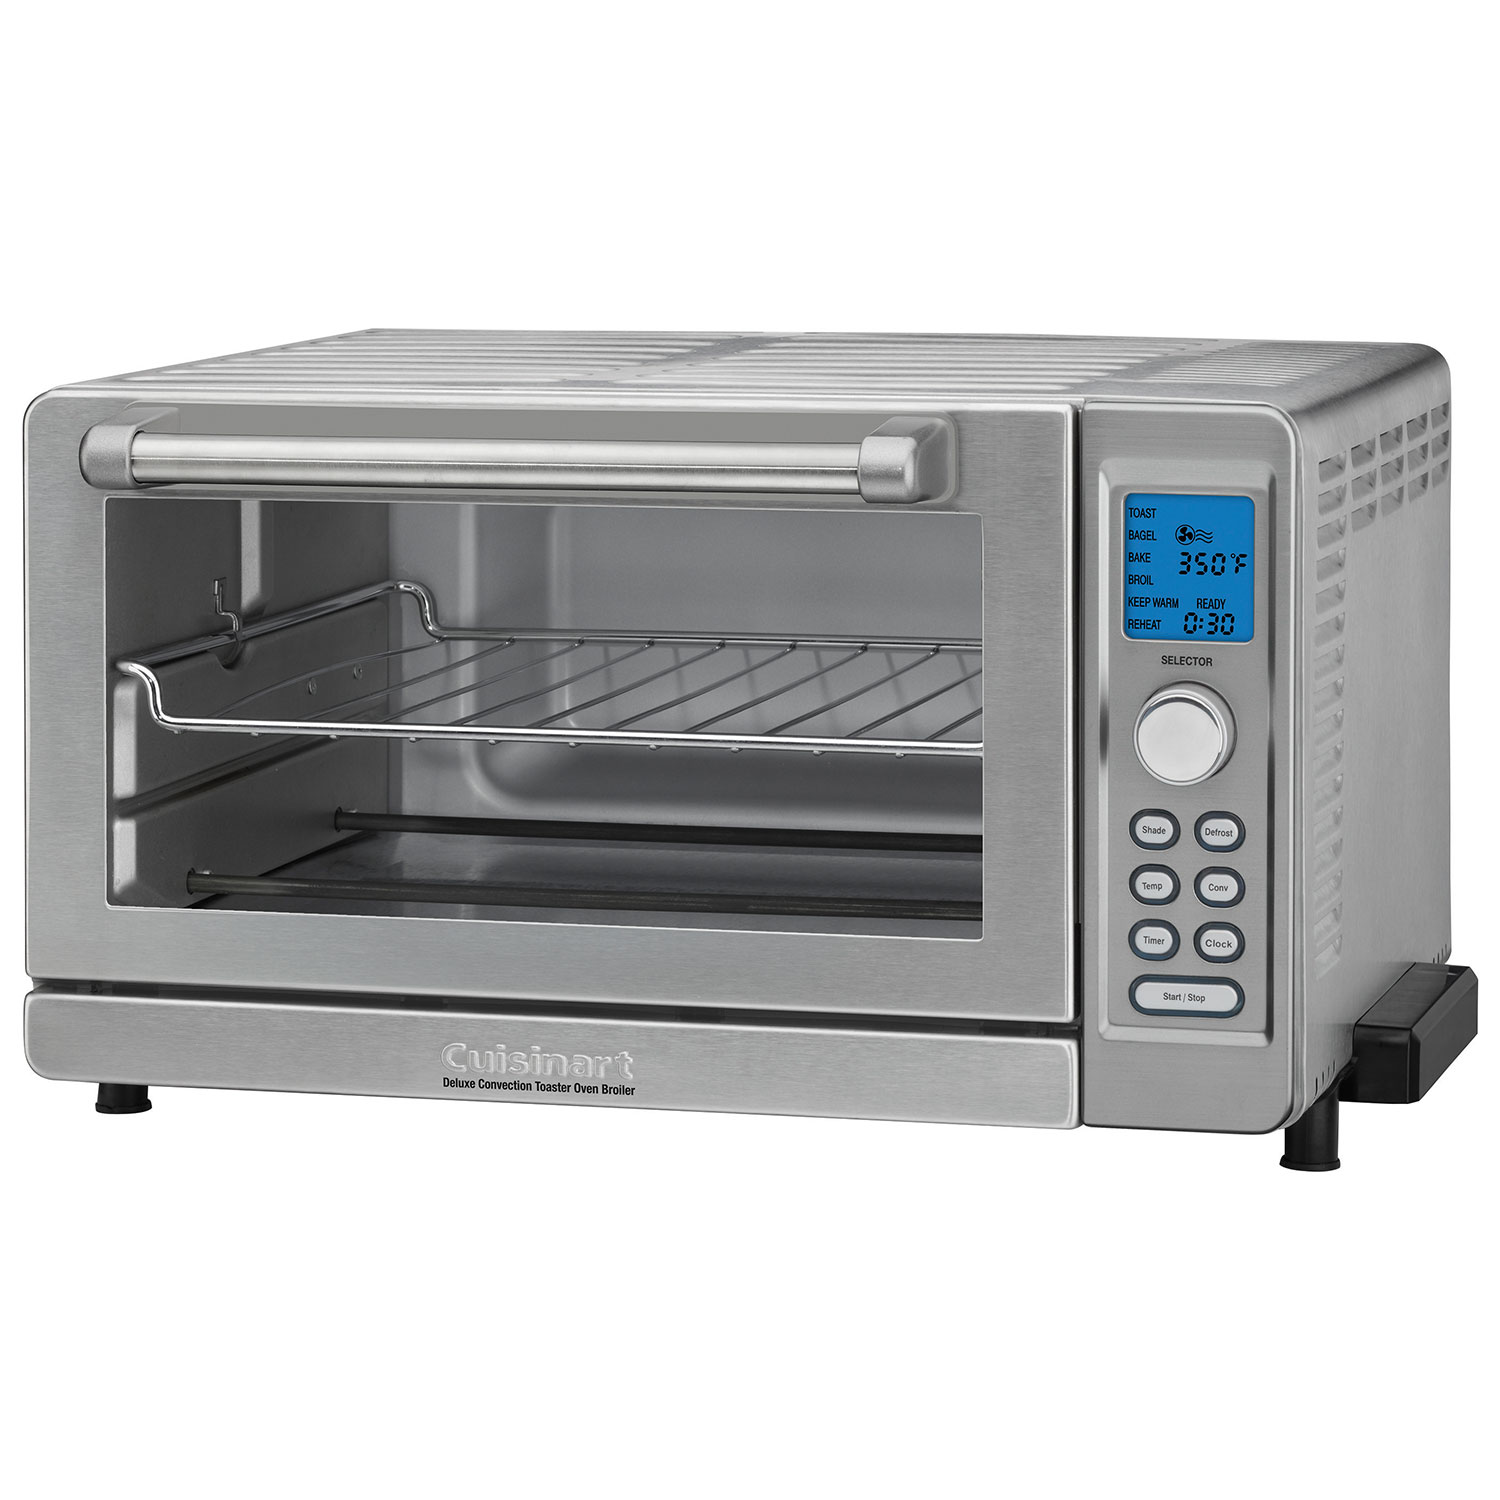 Cuisinart Deluxe Convection Toaster Oven - 0.6 Cu. Ft. - Stainless ...